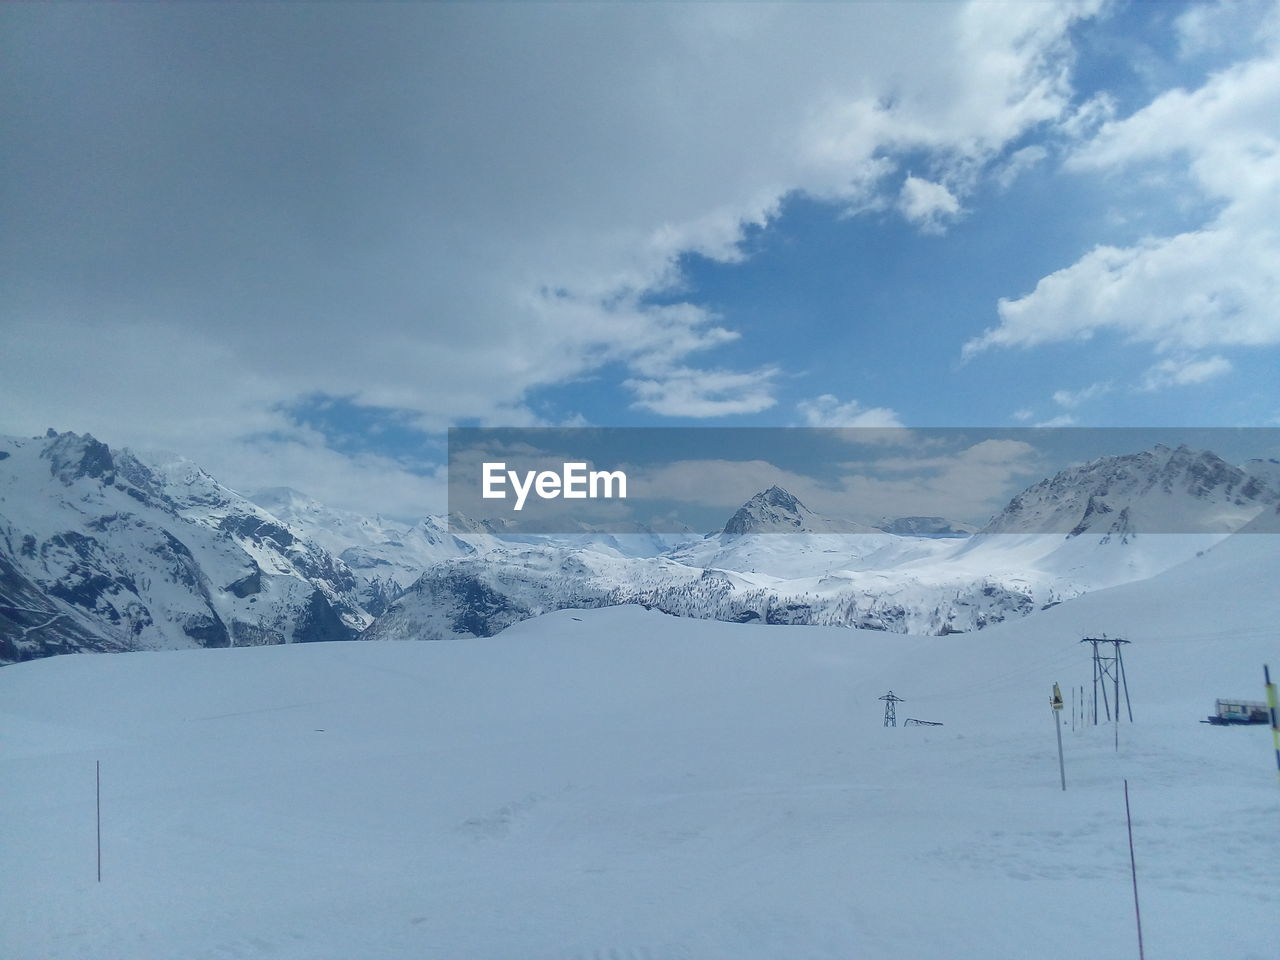 snow, winter, cold temperature, weather, white color, nature, tranquility, beauty in nature, landscape, scenics, tranquil scene, mountain, sky, outdoors, cloud - sky, day, snowcapped mountain, no people, ski lift